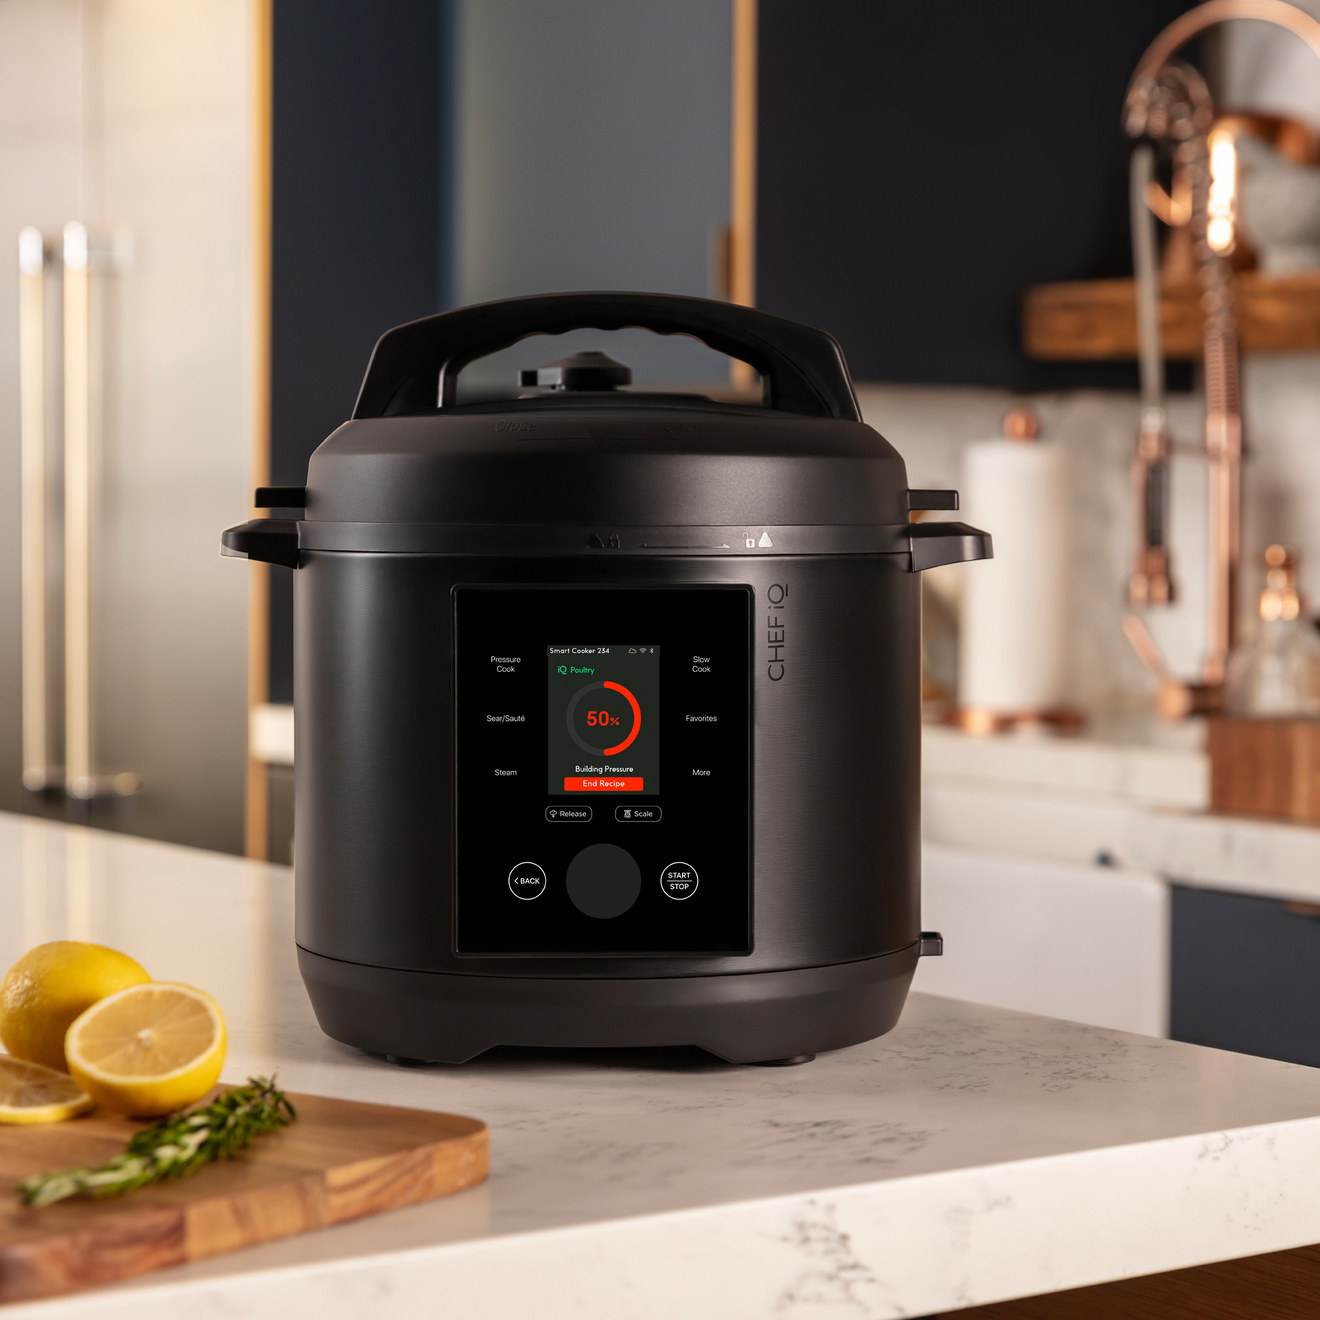 The black pressure cooker with digital screen